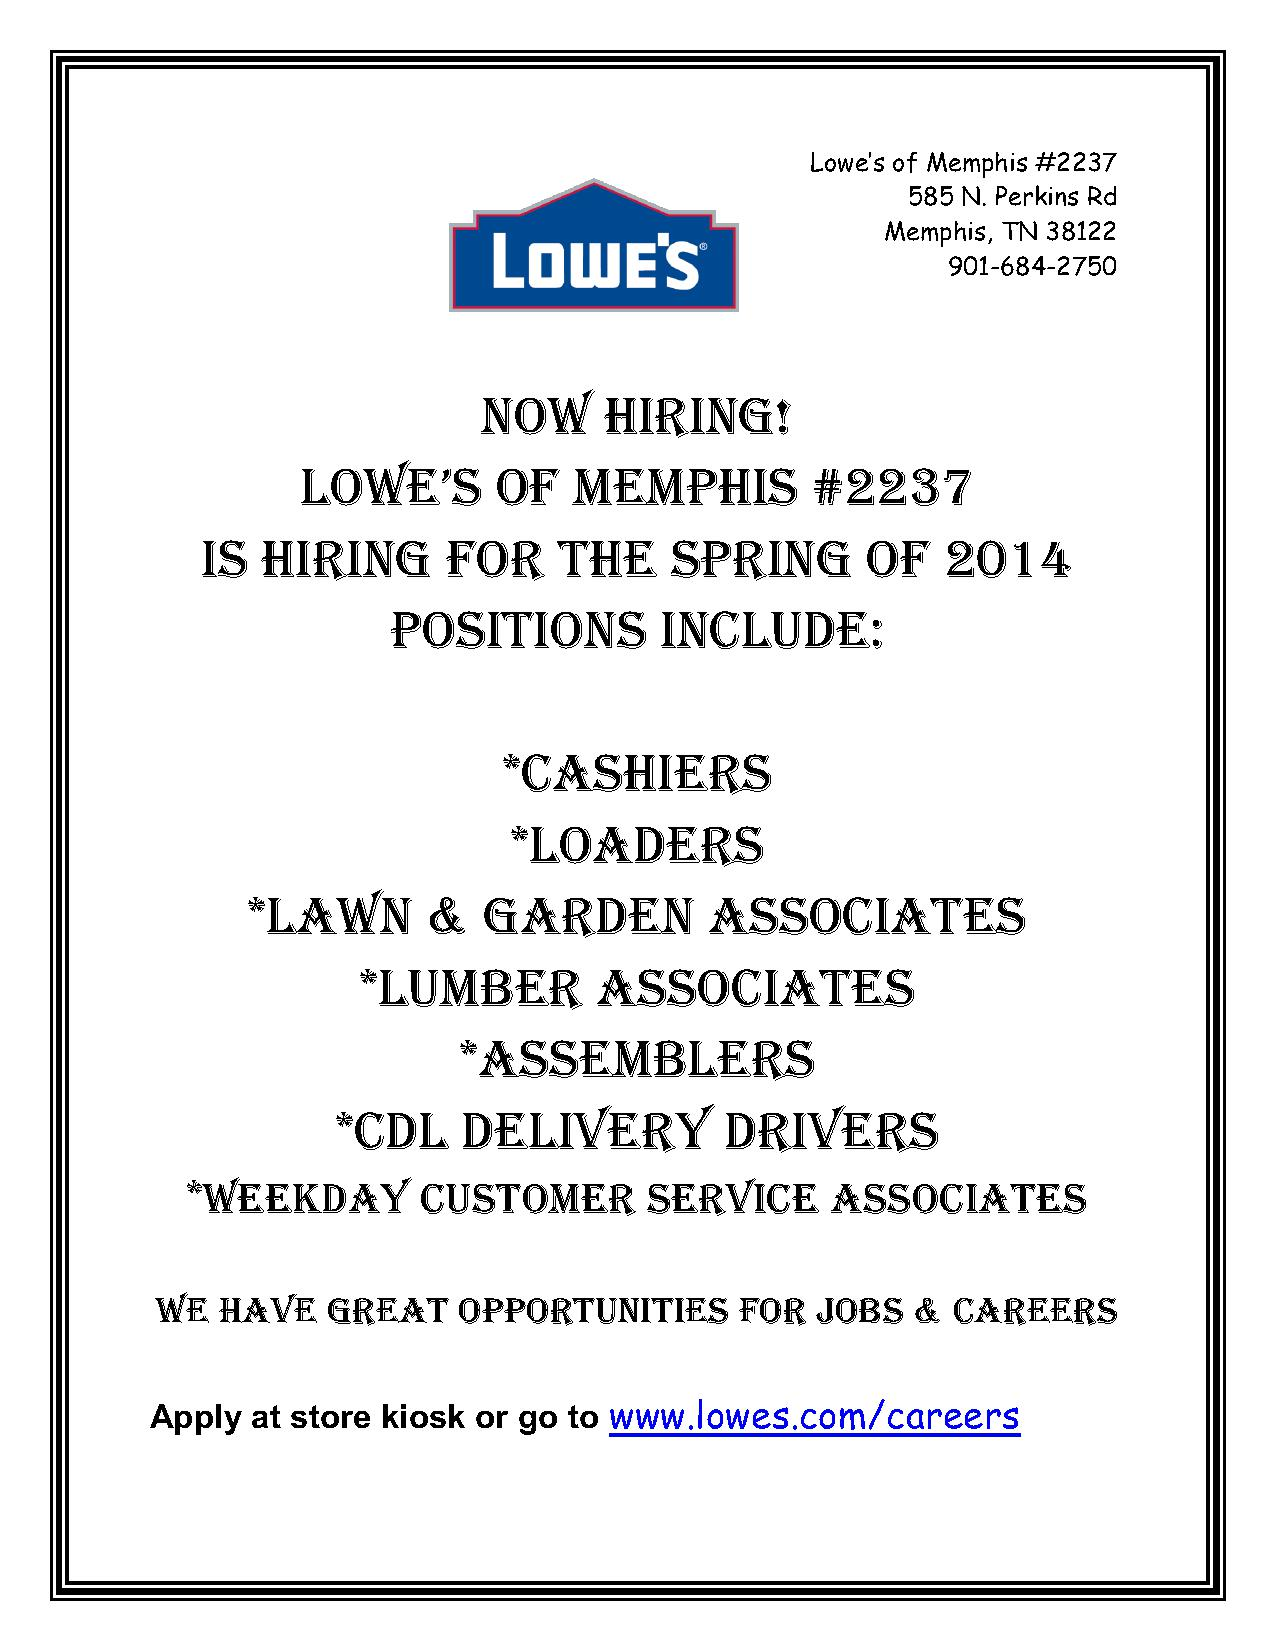 lowe s of memphis is hiring job career news from the memphis lowes 2014 hiring flyer middot lowes 2014 hiring flyer 1